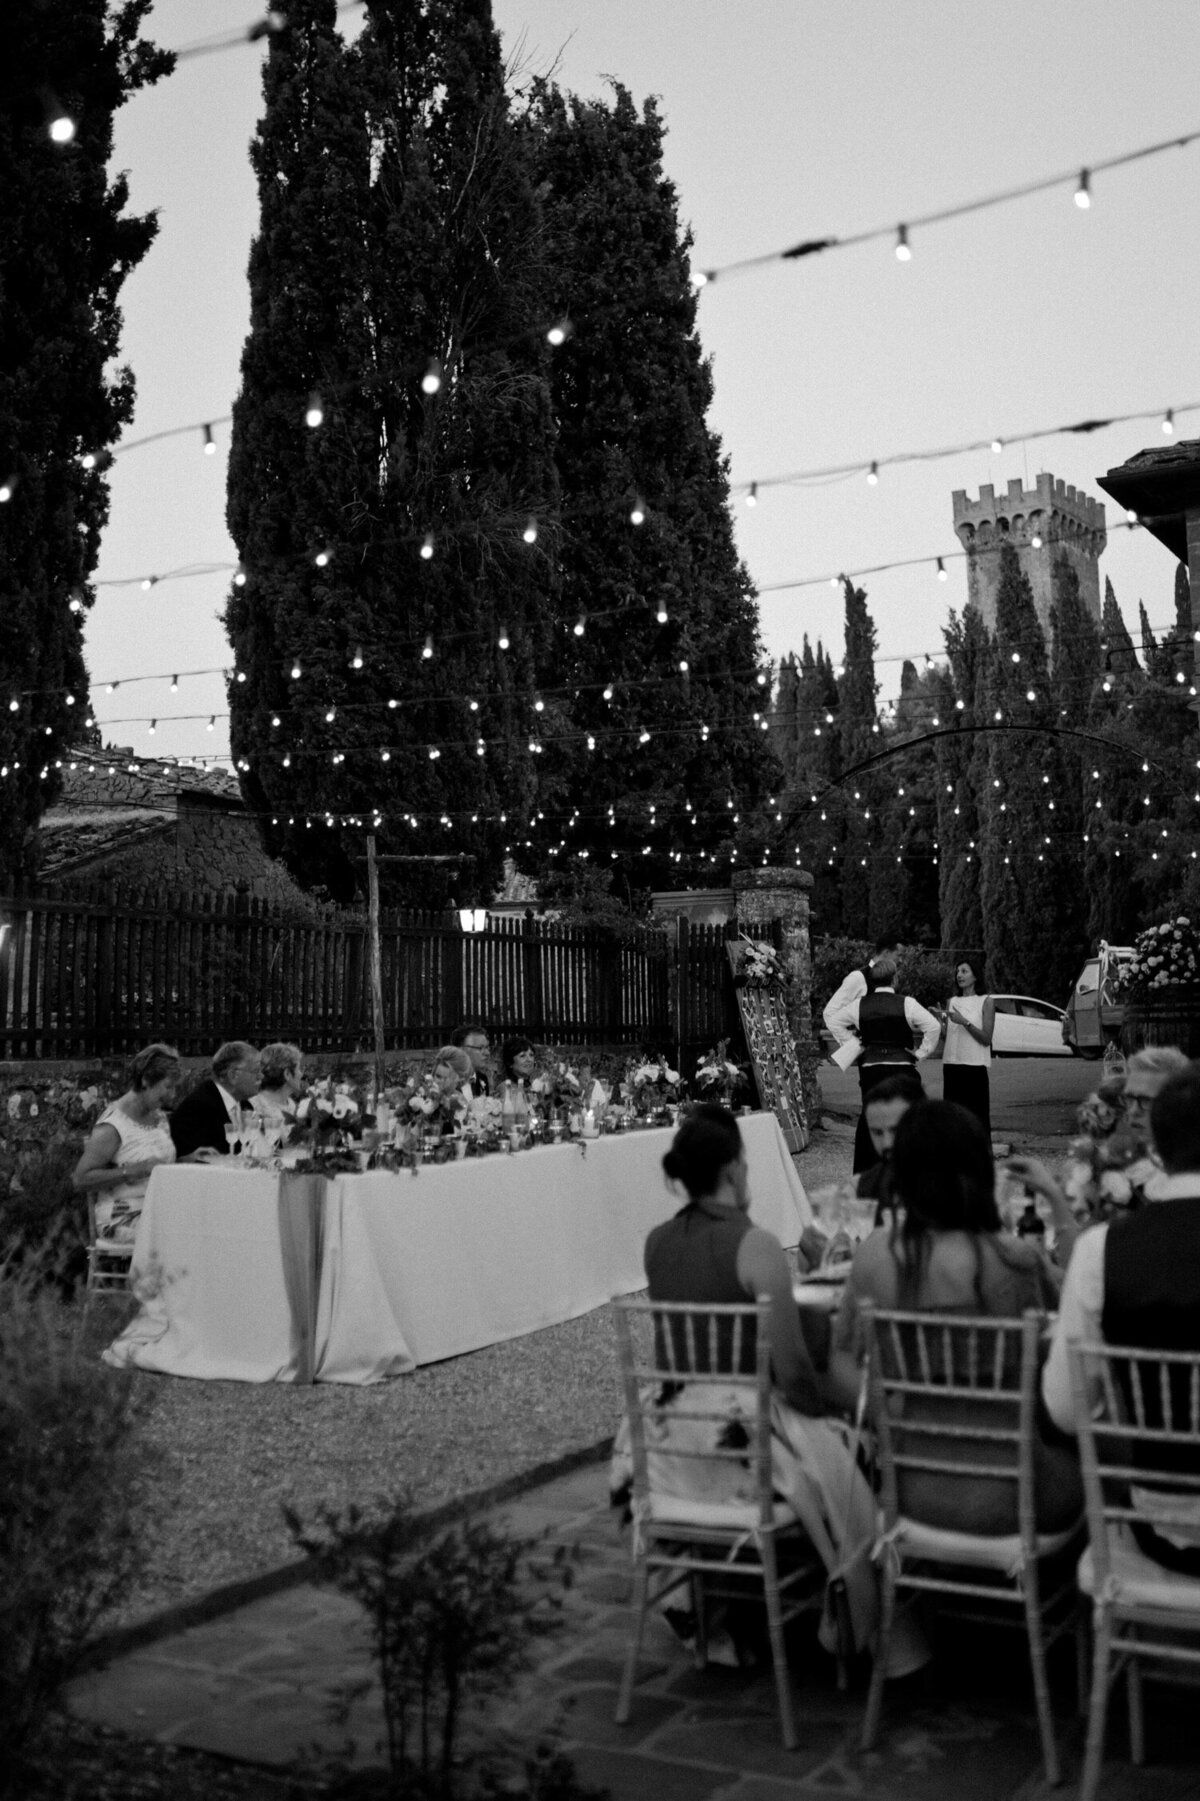 146_Tuscany_Luxury_Wedding_Photographer (163 von 215)_So thankful to be a luxury destination wedding photographer in Tuscany! Claire and James invited their beloved family & friends from London to their luxury wedding in Tuscany.